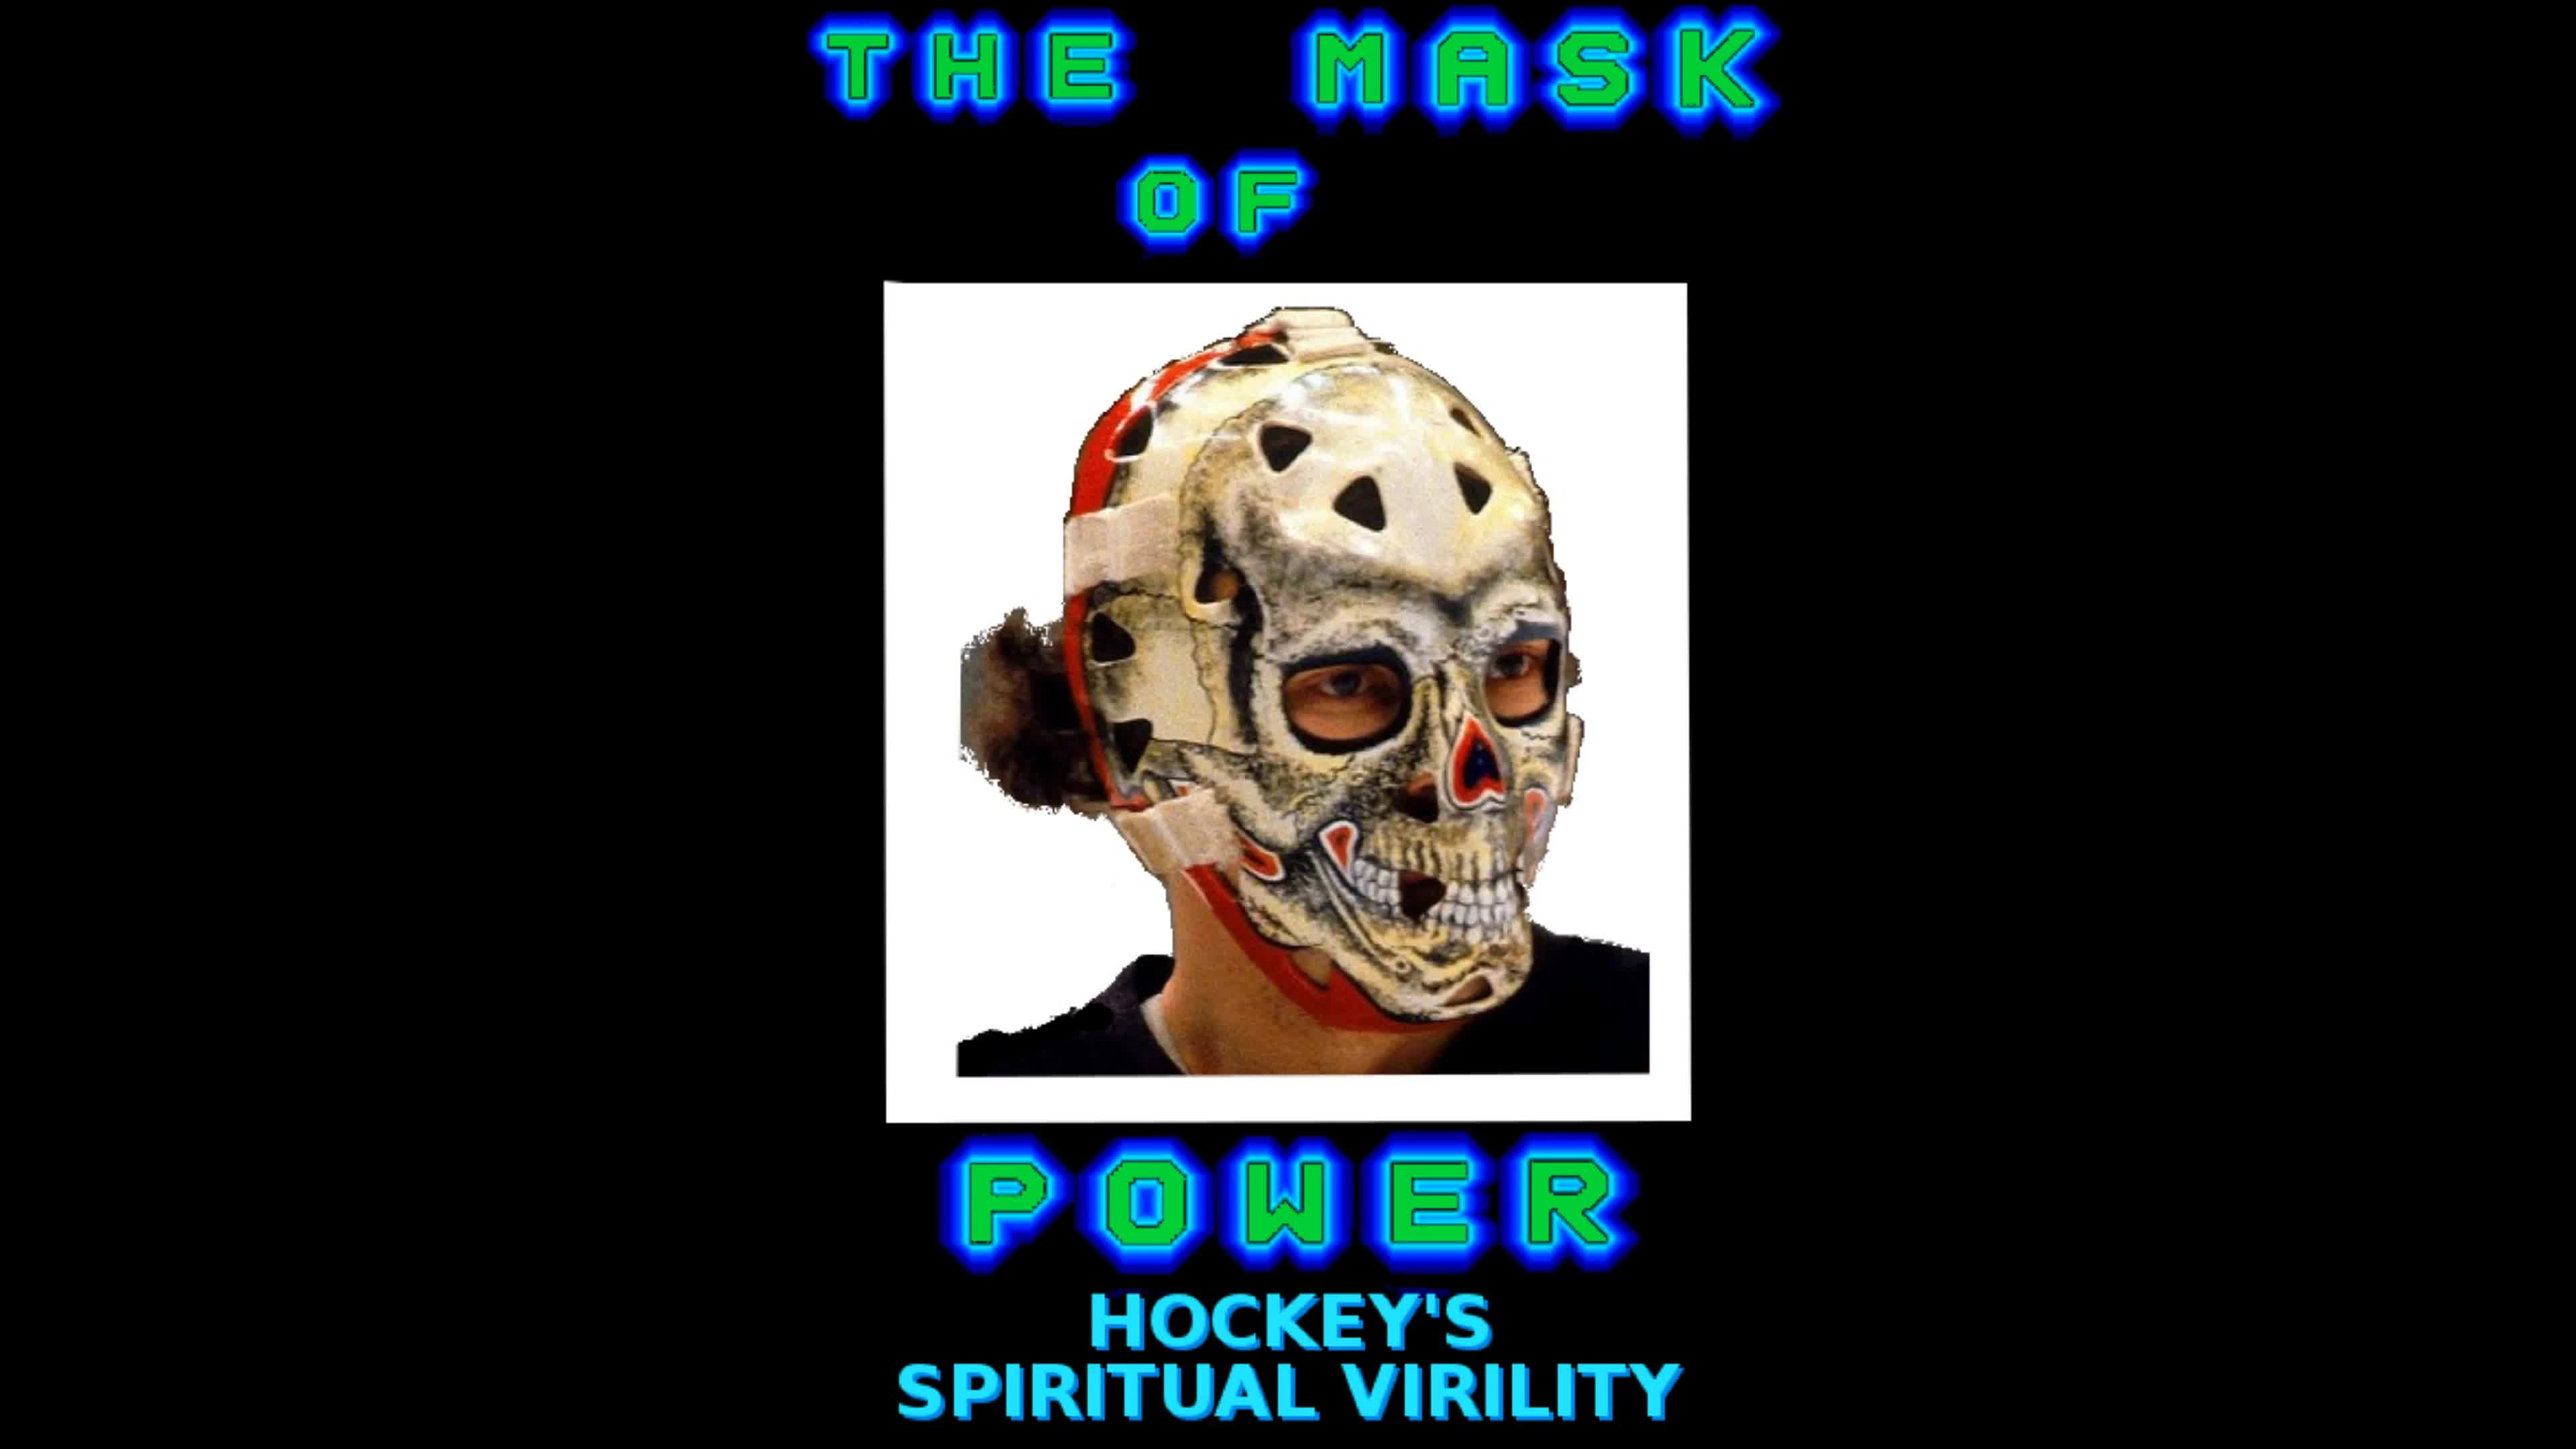 THE MASK OF POWER: Hockey's Spiritual Virility